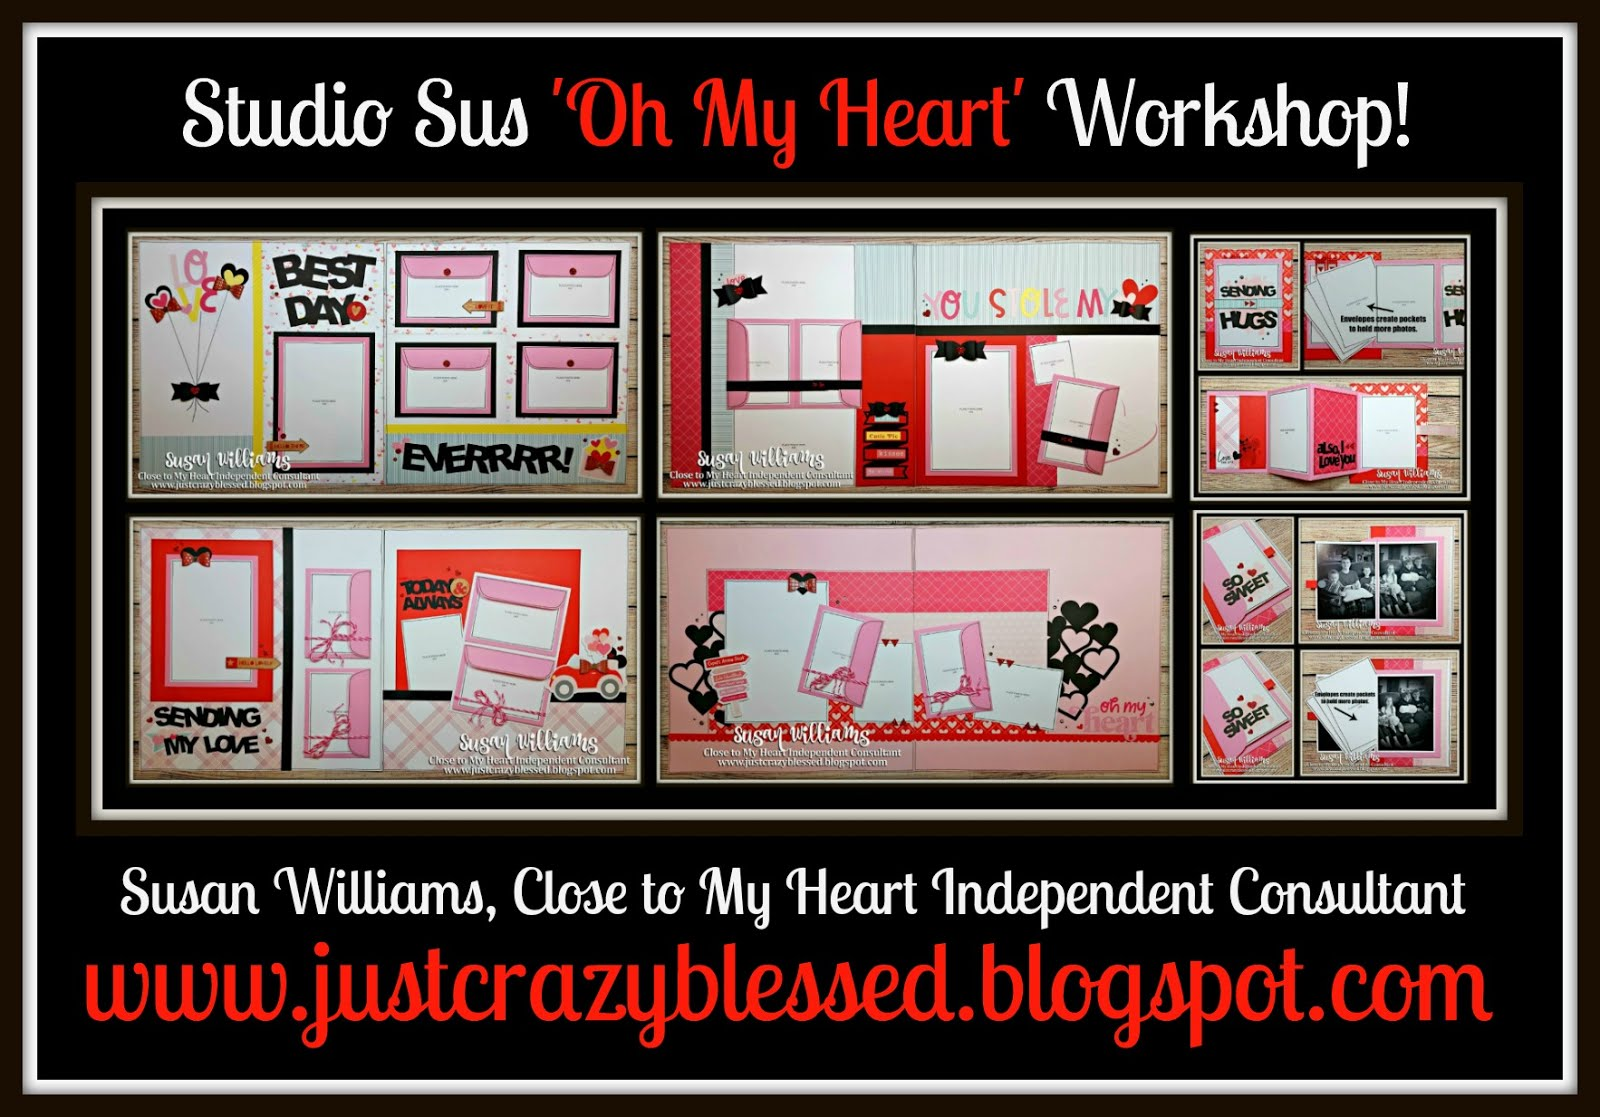 'Oh My Heart' Workshop!